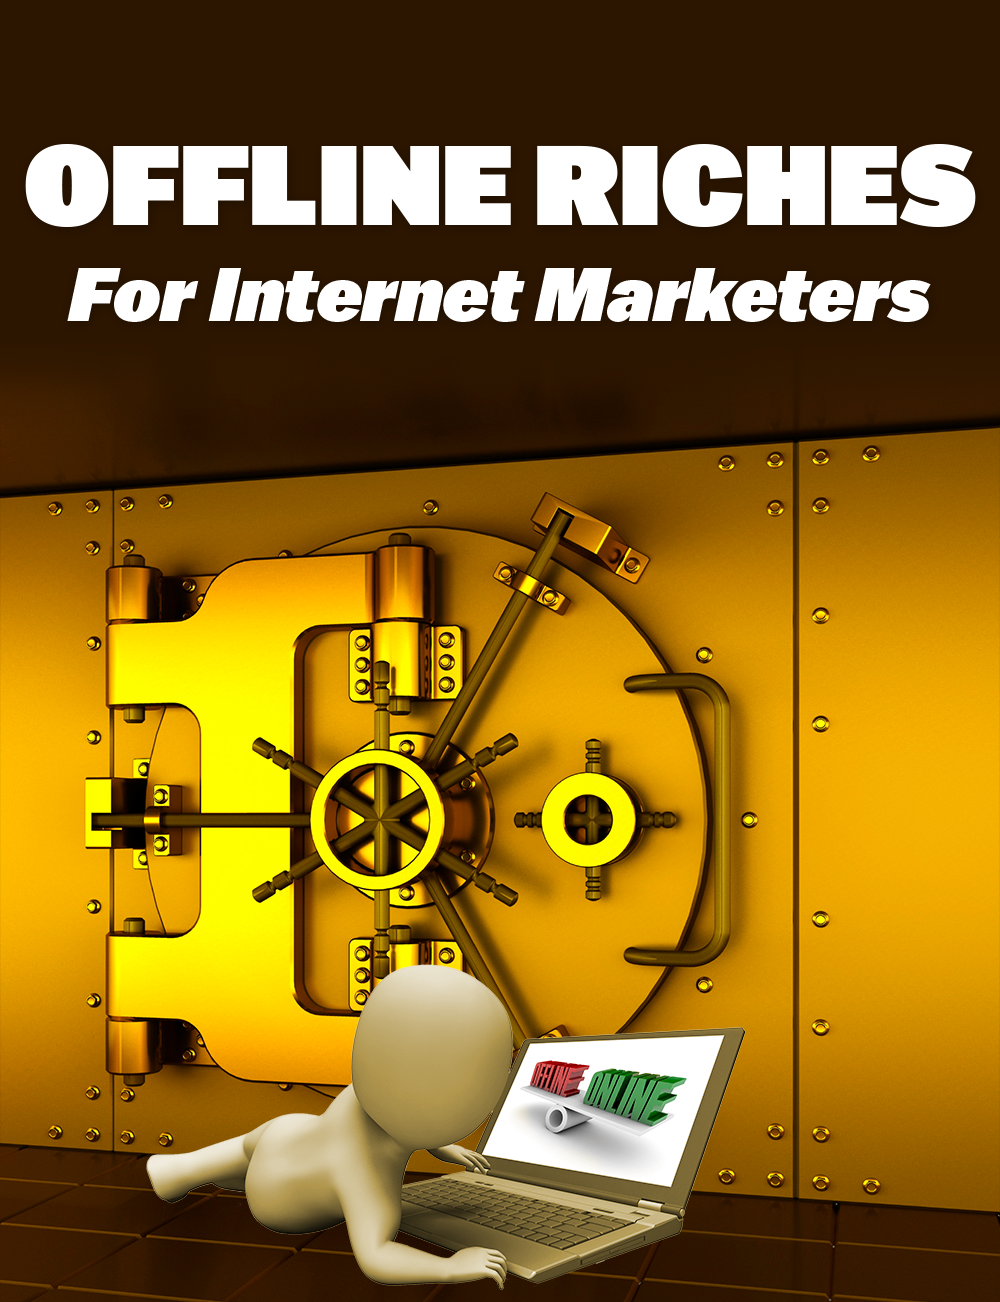 Offline Riches For Internet Marketers